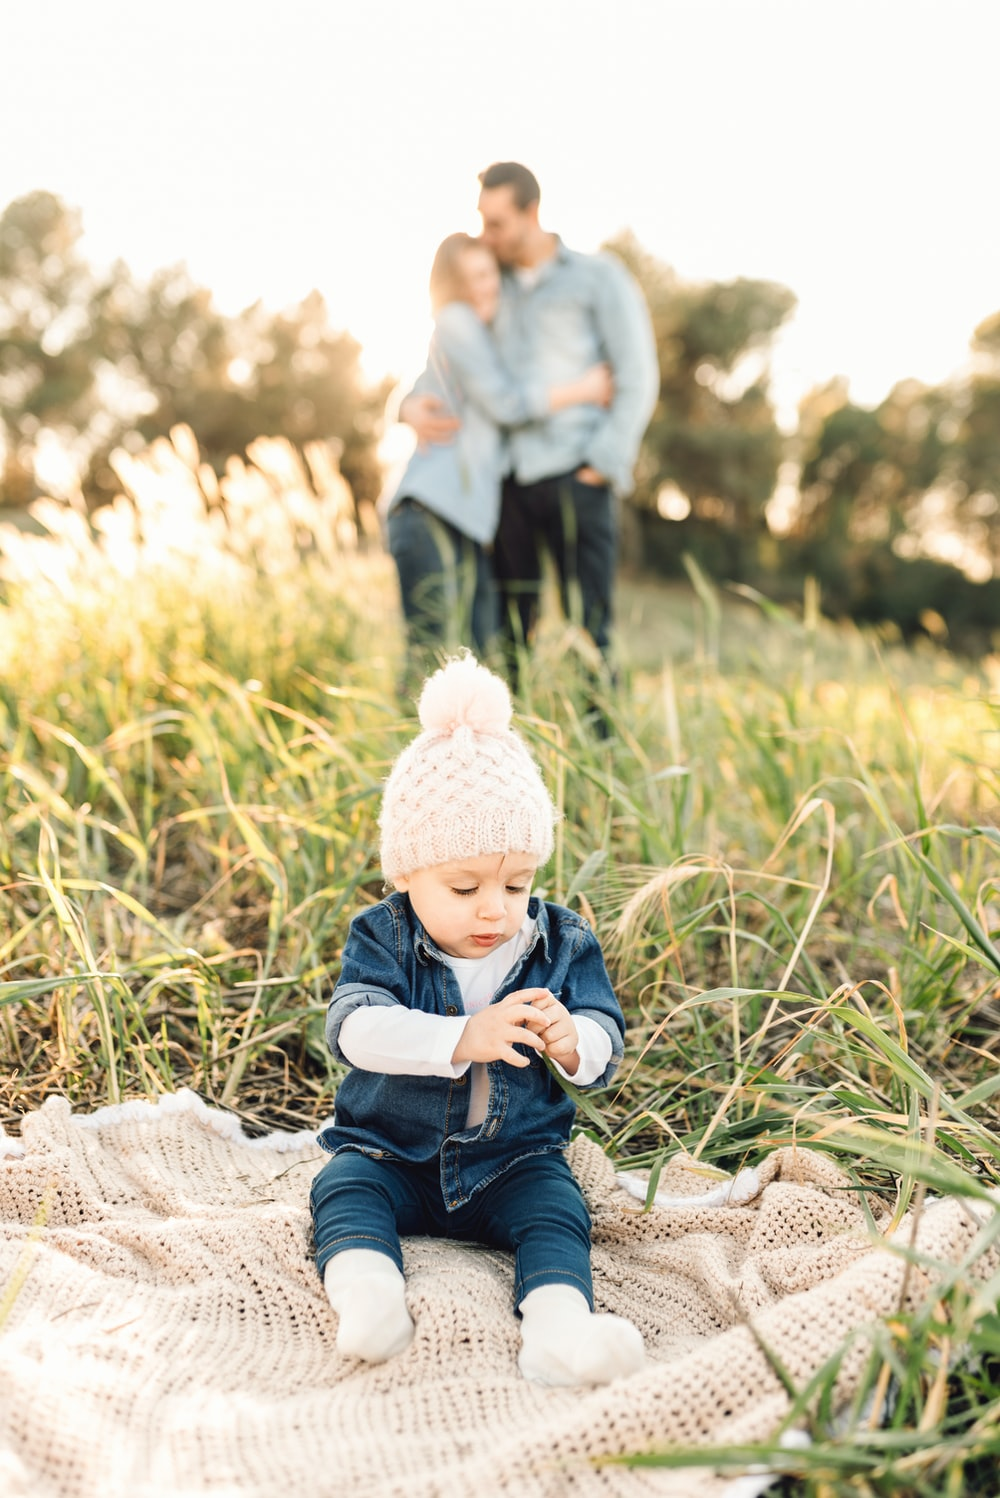 child in blue denim jacket and white knit cap sitting on white textile during daytime